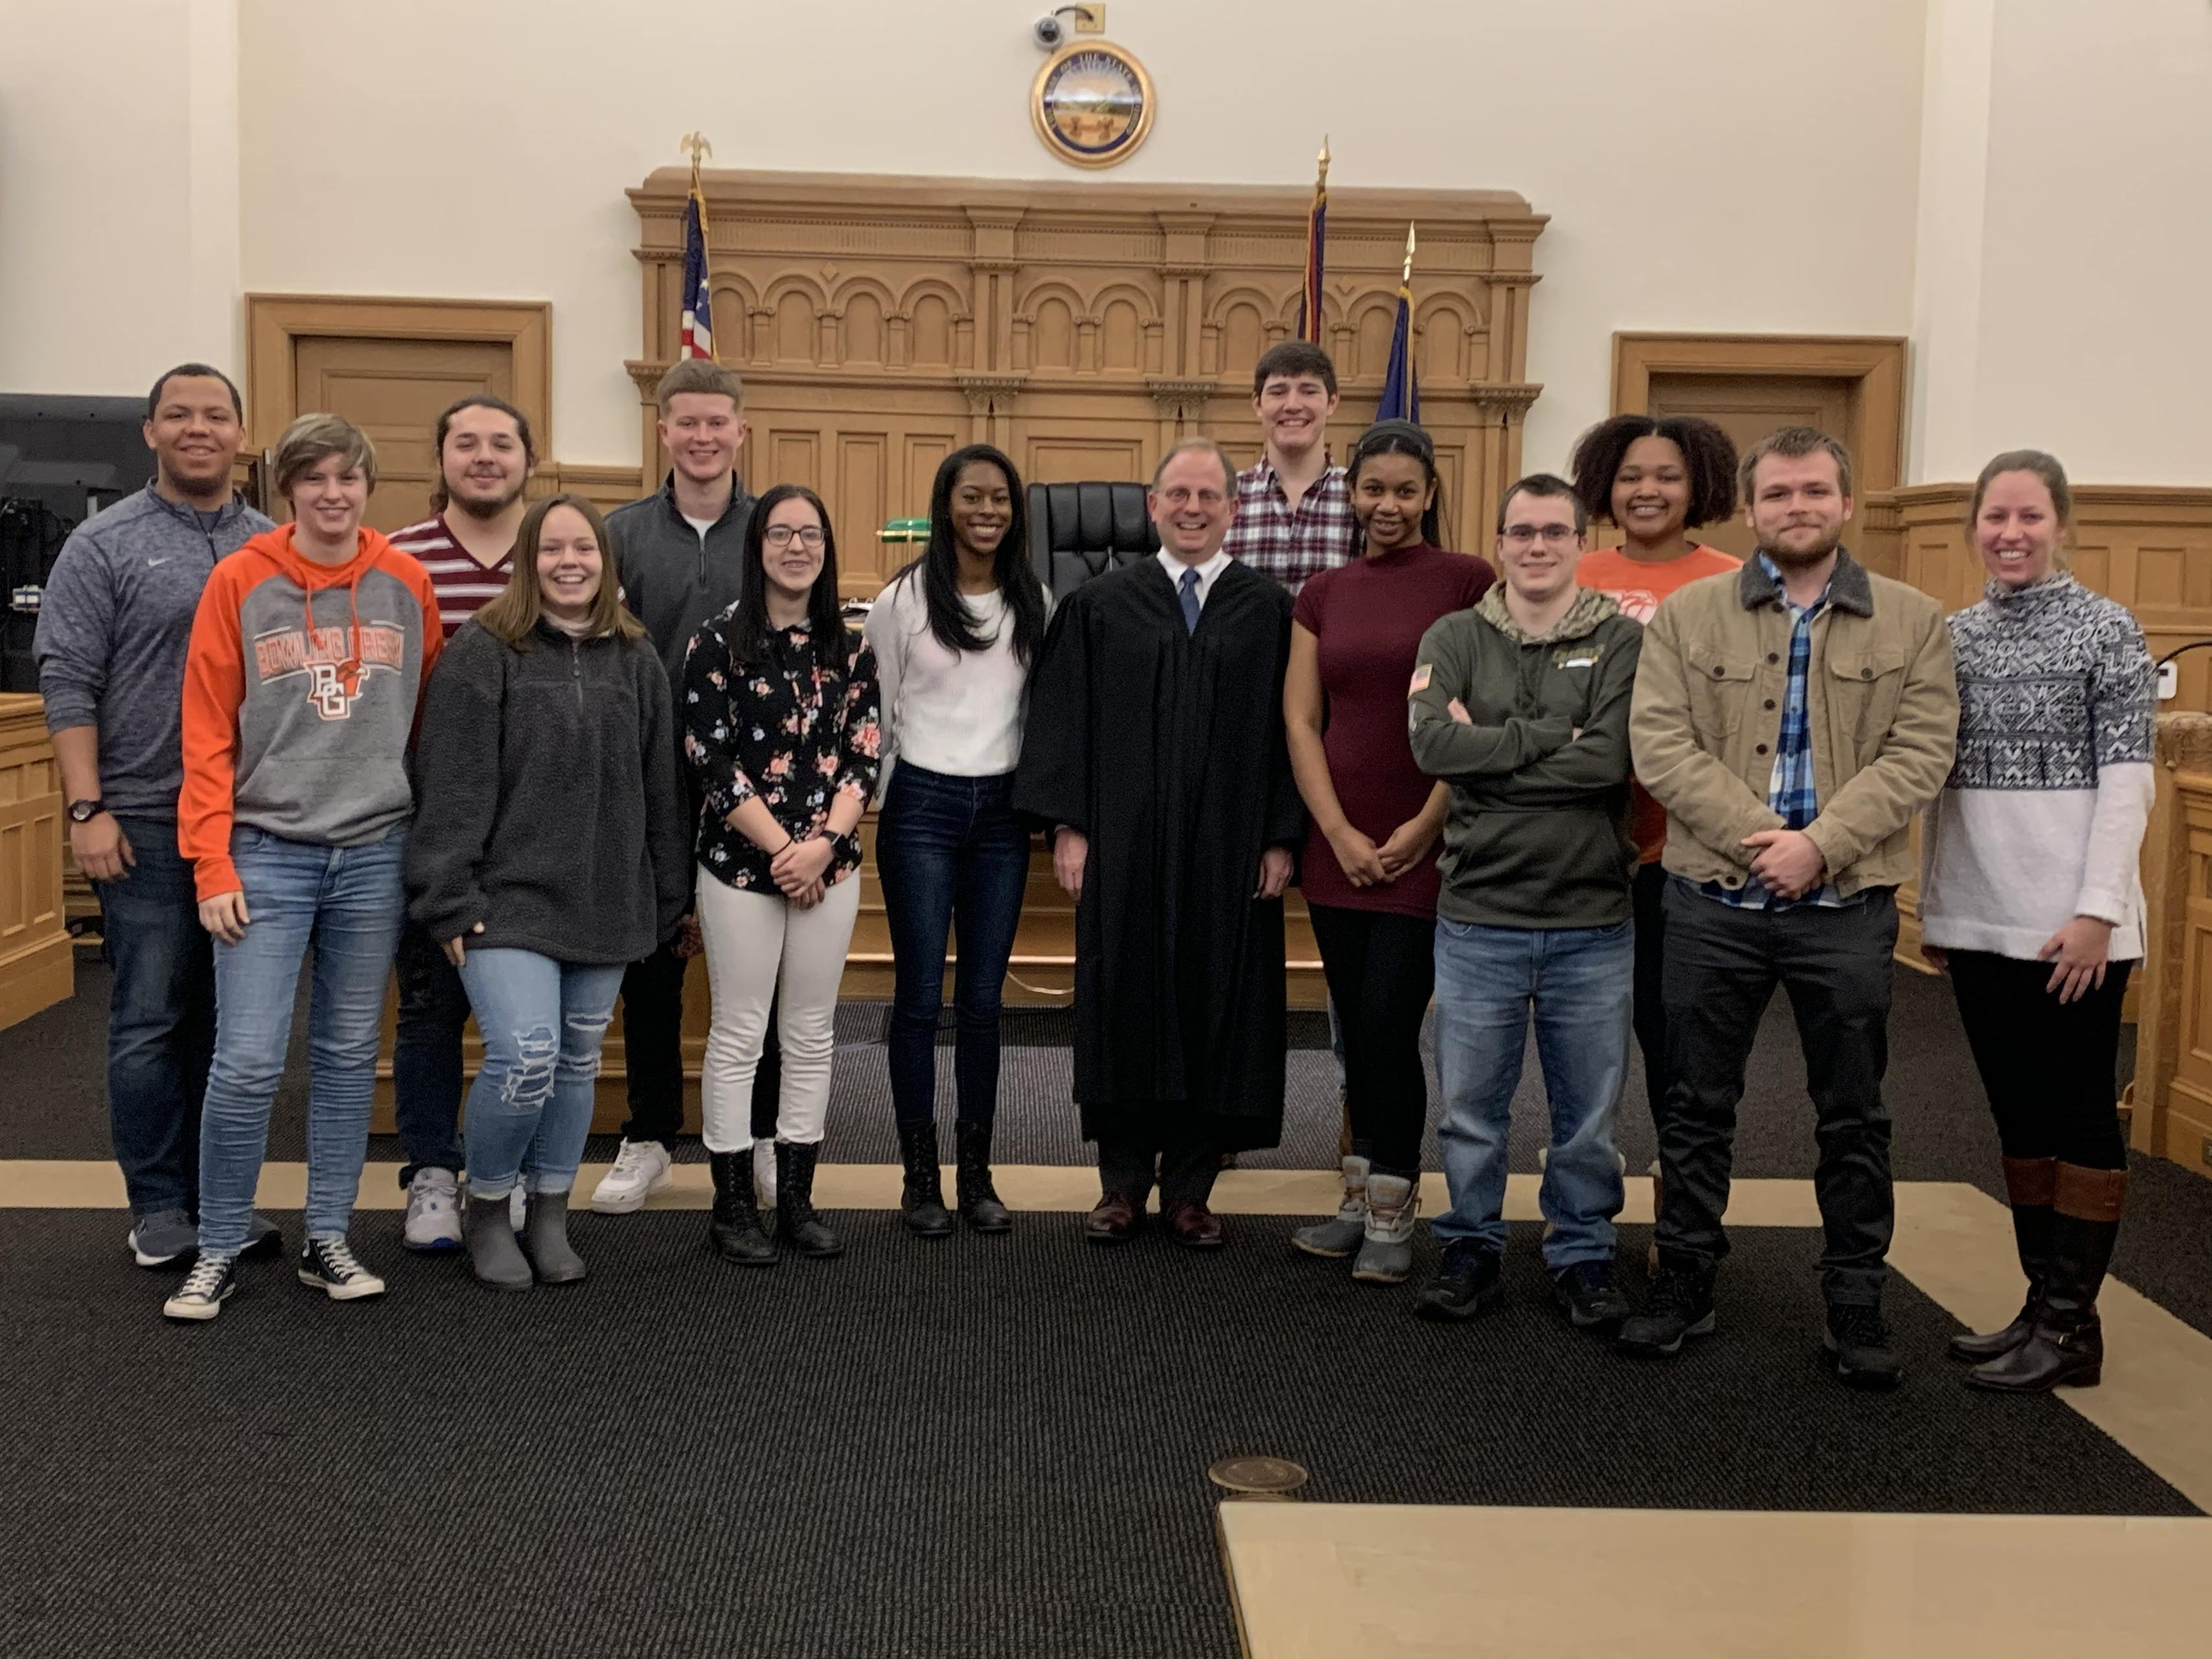 Students on a field trip, smiling with a Judge in a courtroom